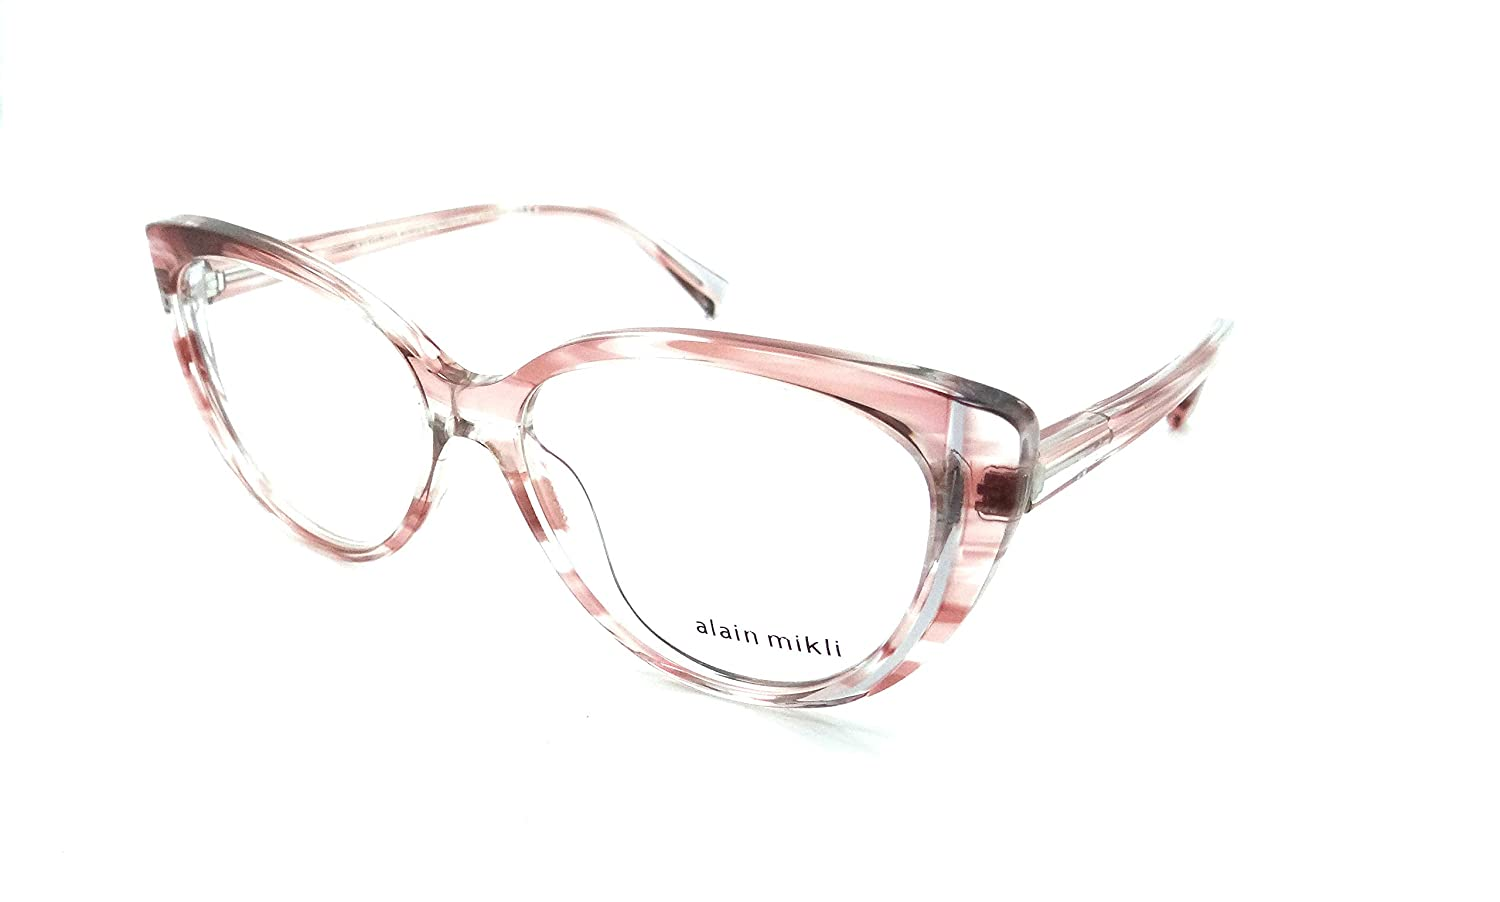 cd766433f55 Amazon.com  Alain Mikli Rx Eyeglasses Frames A03084 003 55-15-140 Paint  Pink Grey Italy  Clothing